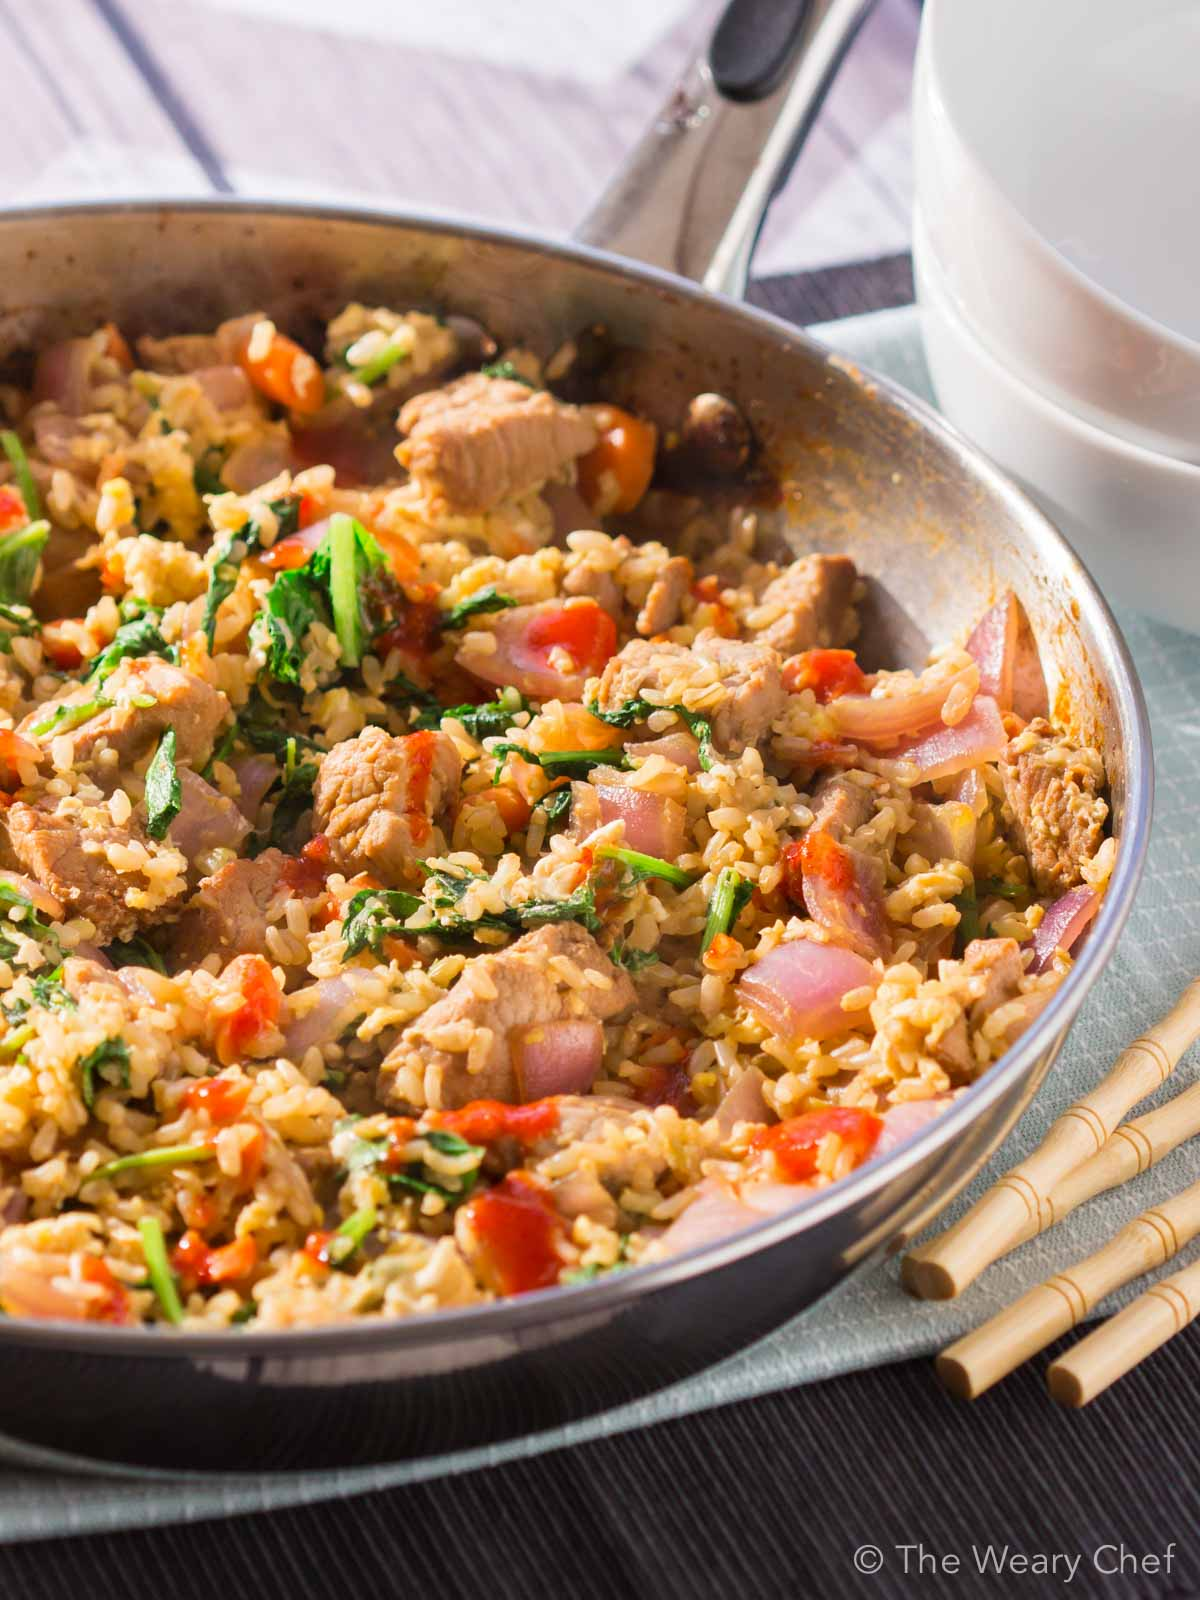 19. Easy Pork Fried Rice